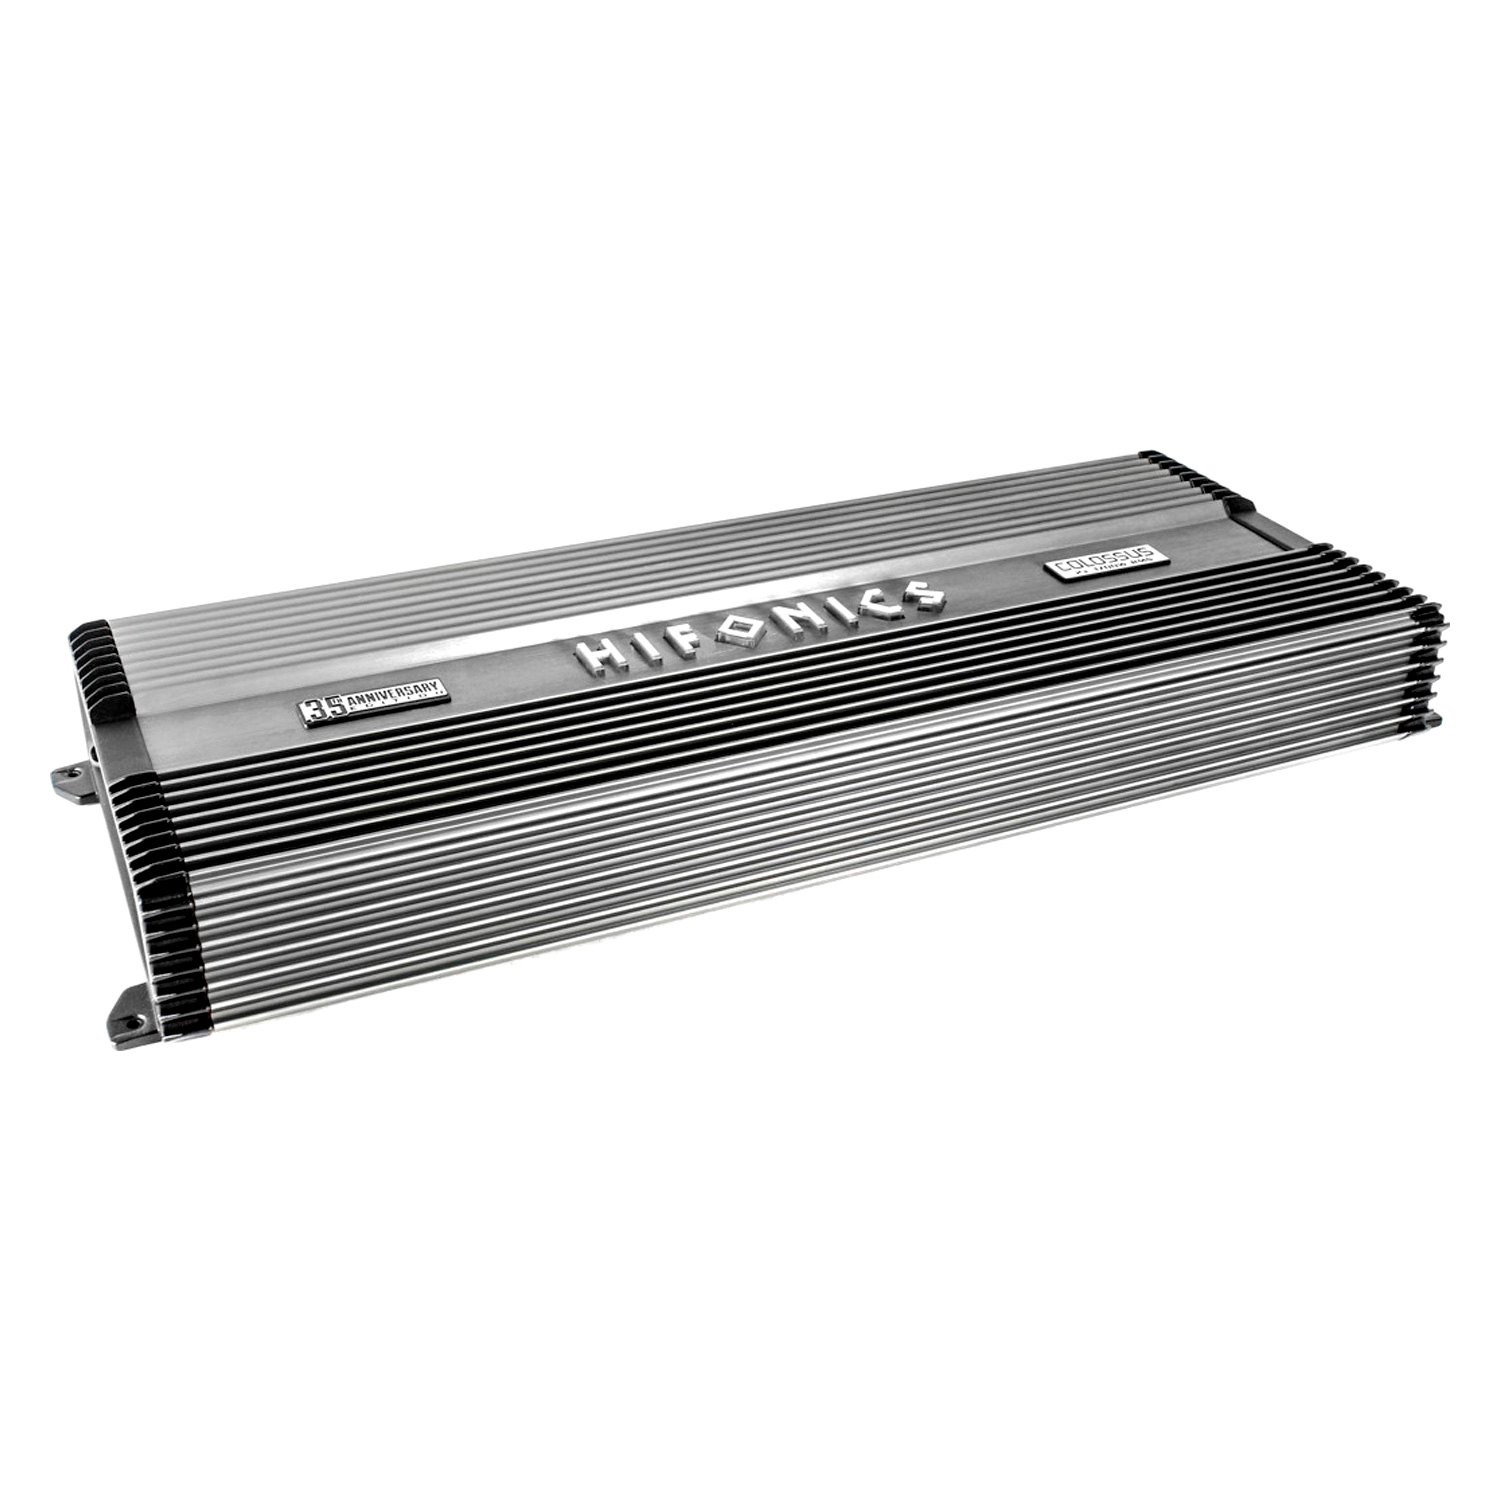 Hifonics 2 channel amp